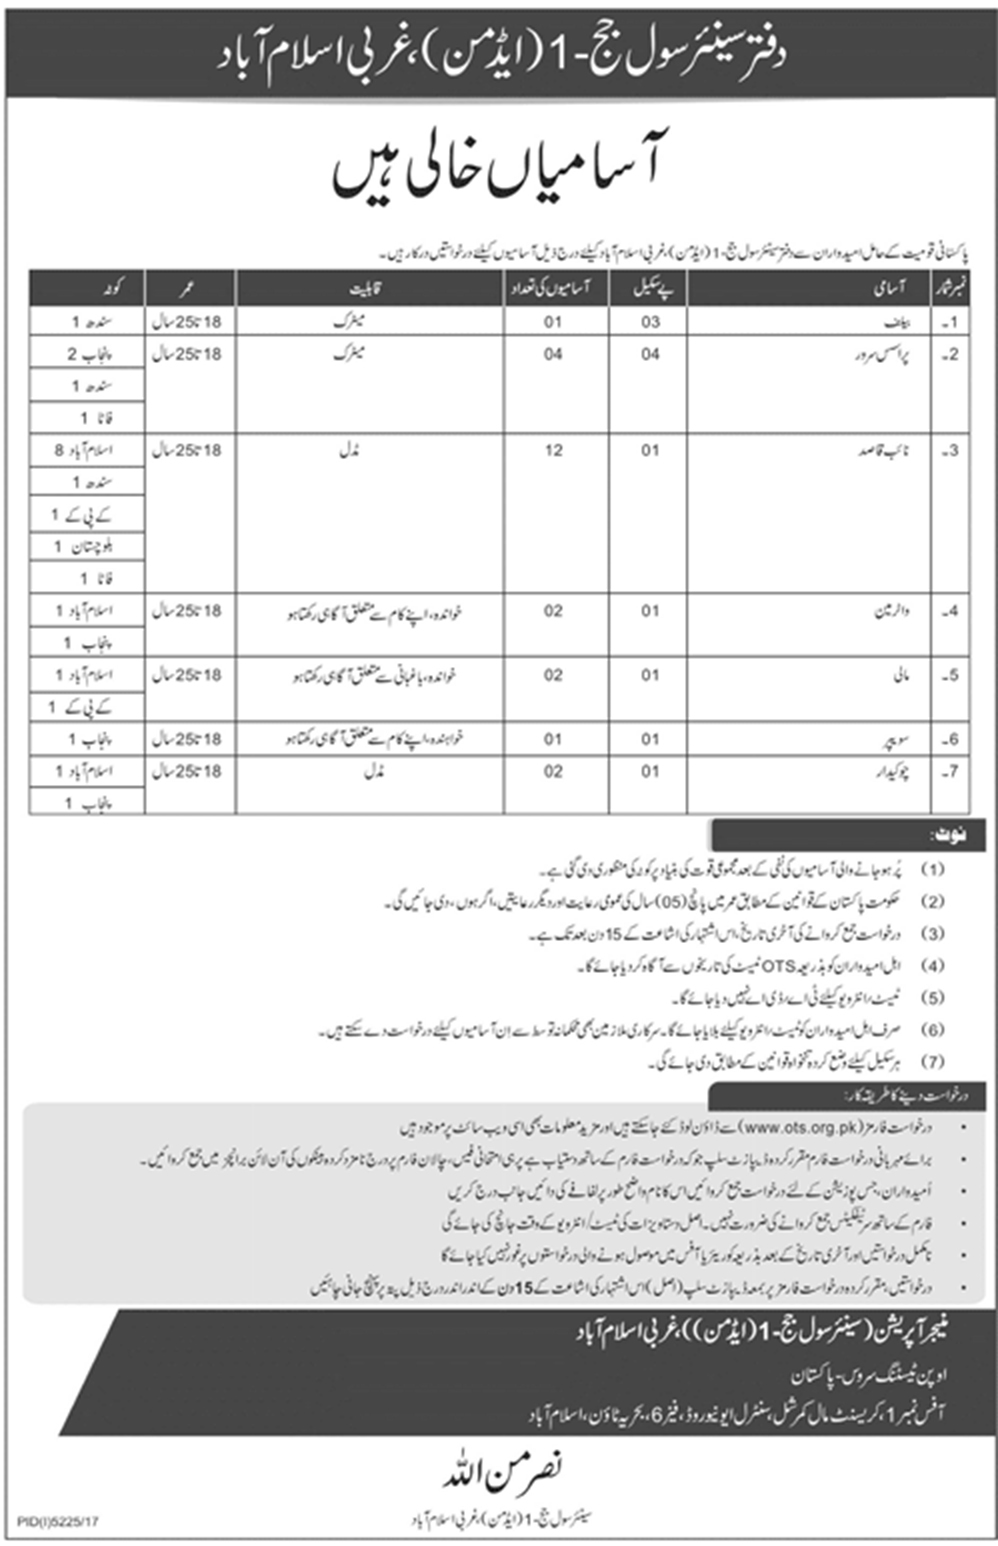 Jobs In Office Of The Senior Civil Judge March 2018 via OTS